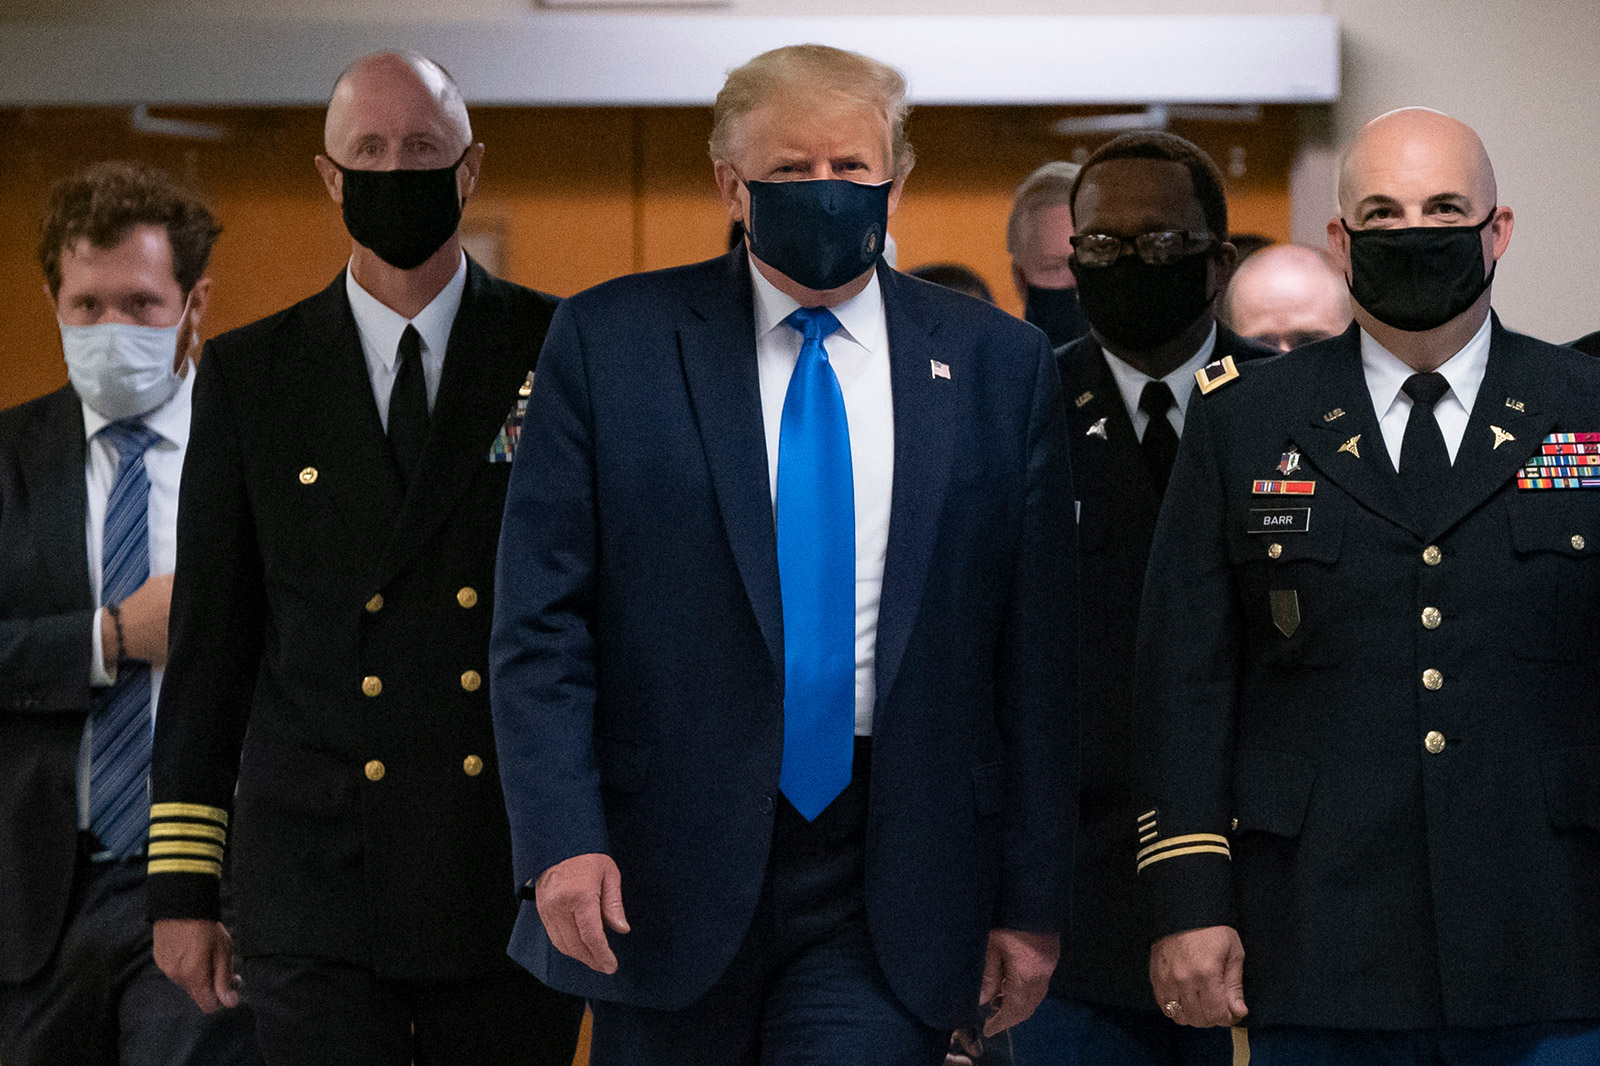 President Donald Trump wears a mask during a July 11 visit to the Walter Reed National Military Medical Center in Bethesda, Maryland.